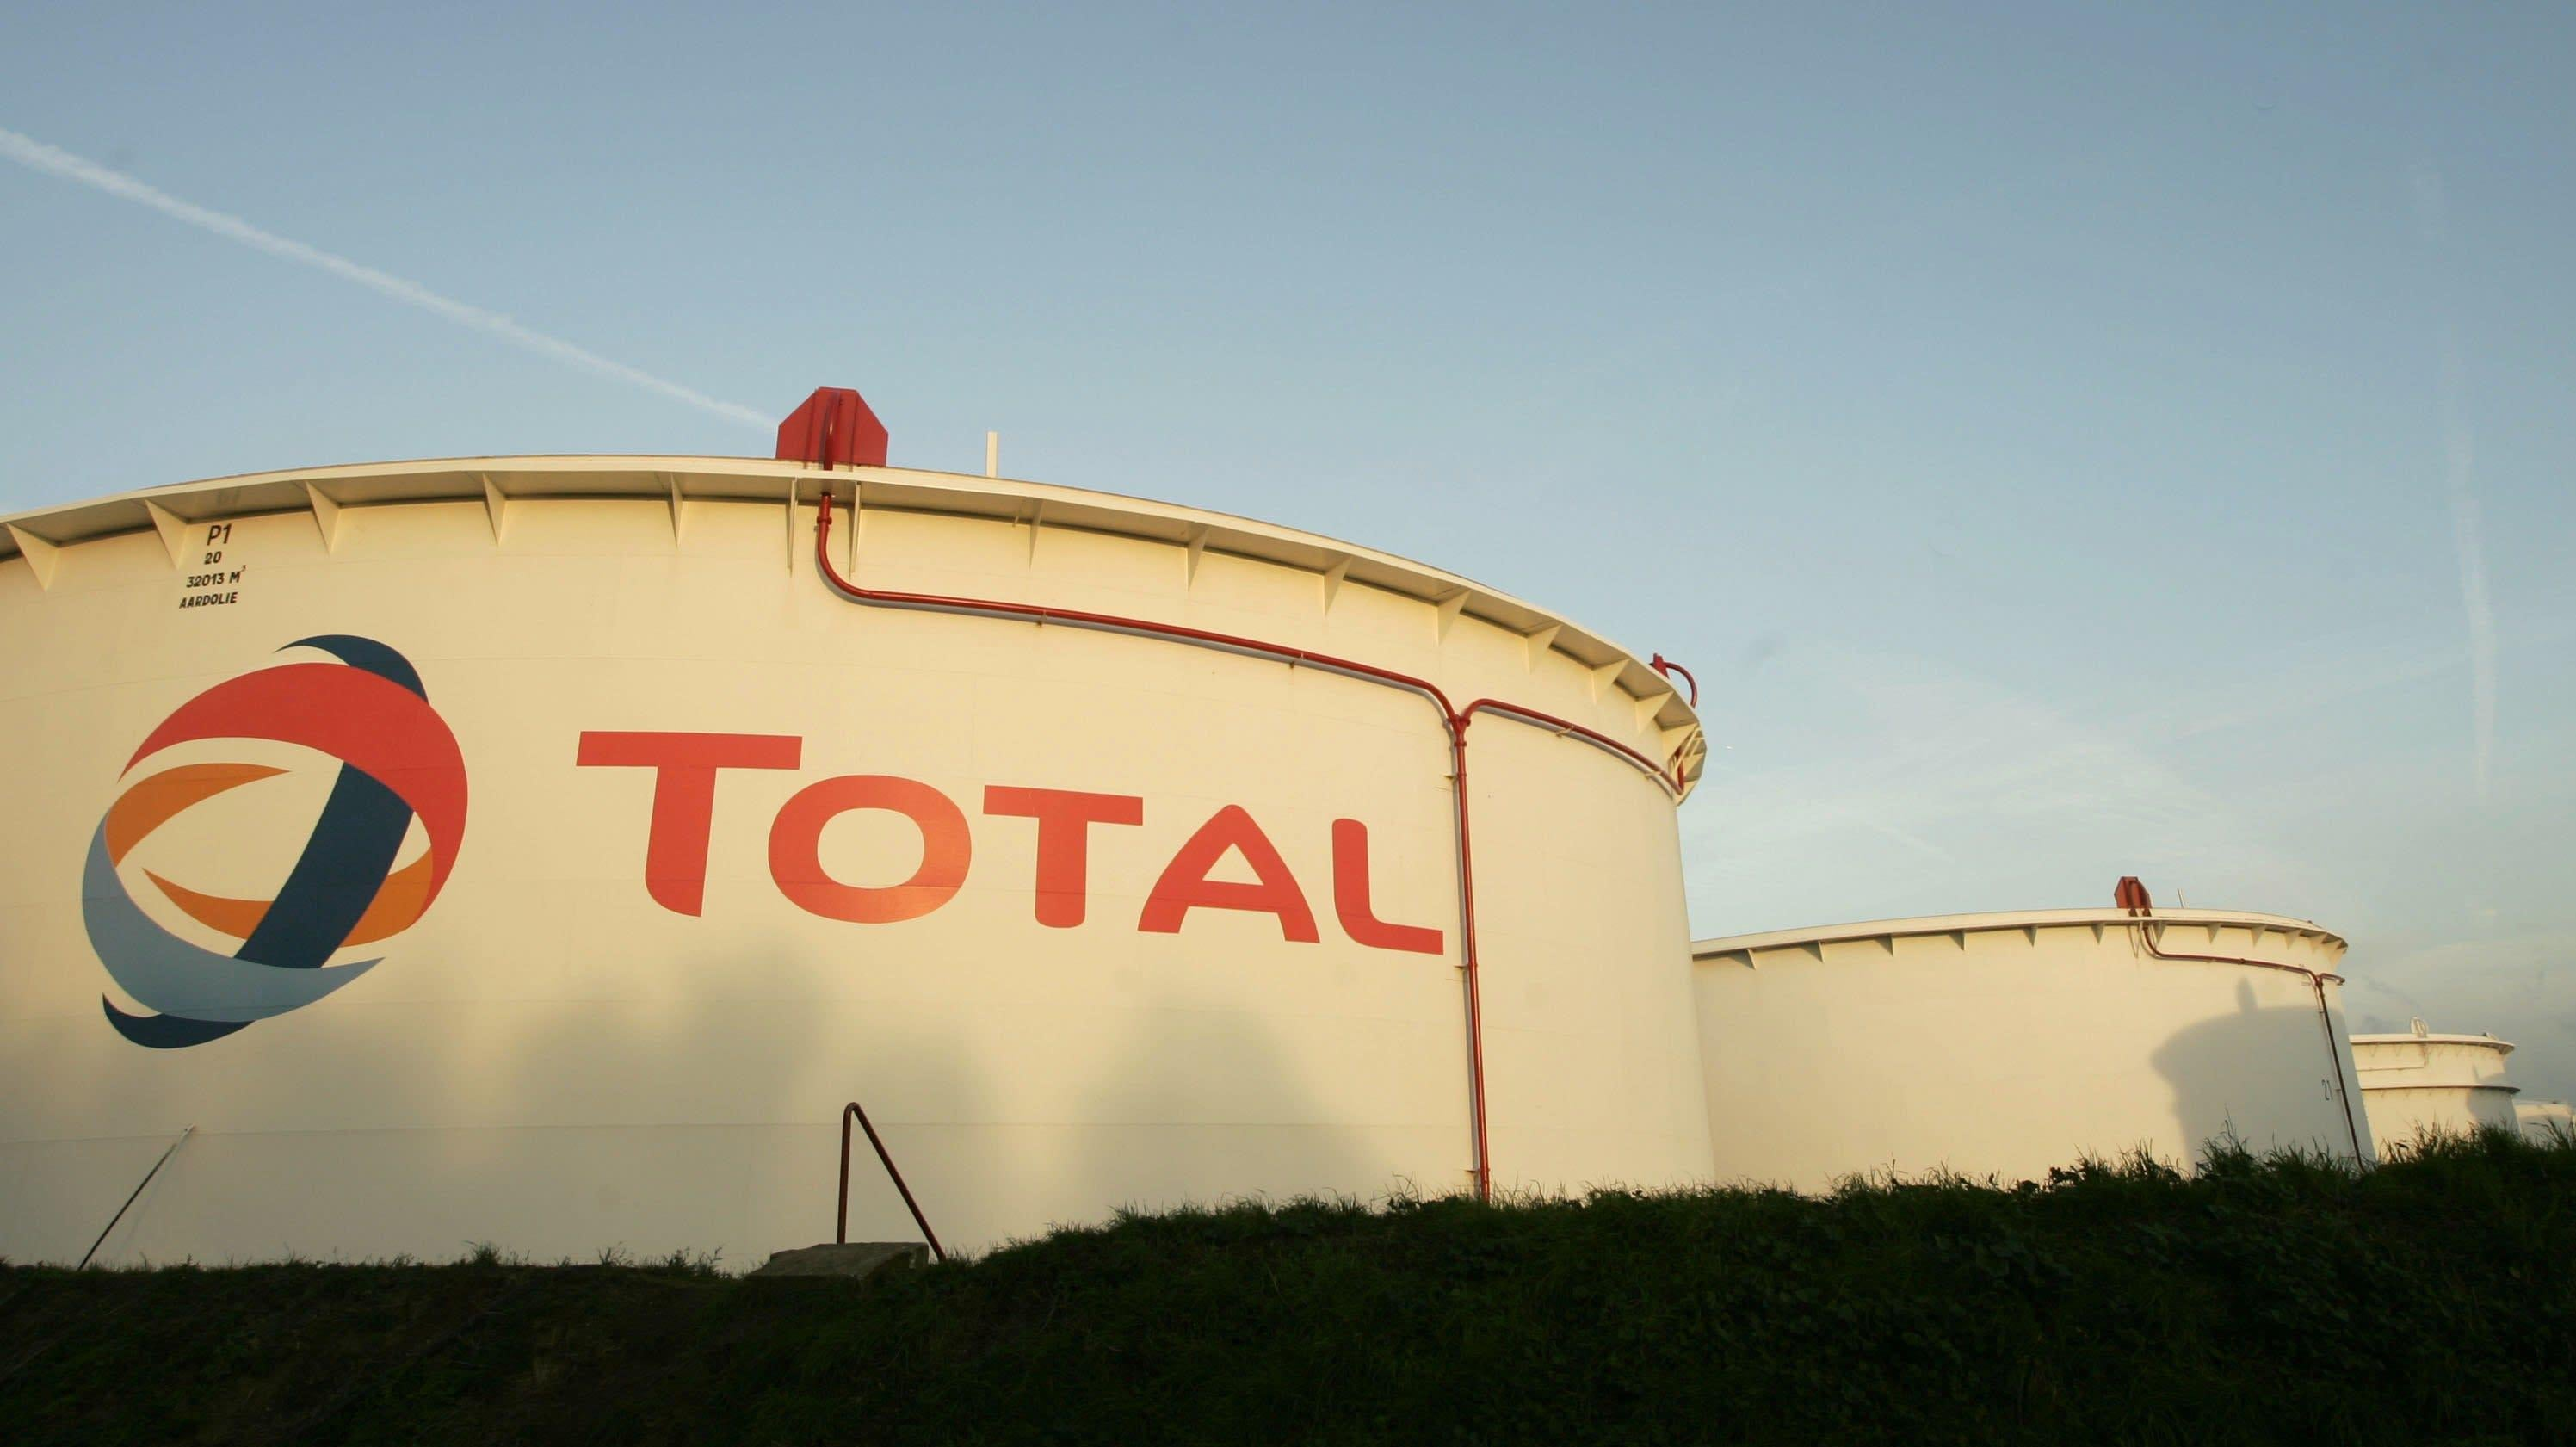 French Oil Giant Ranked As Climate Leader The Same Week It's Sued For Climate Negligence